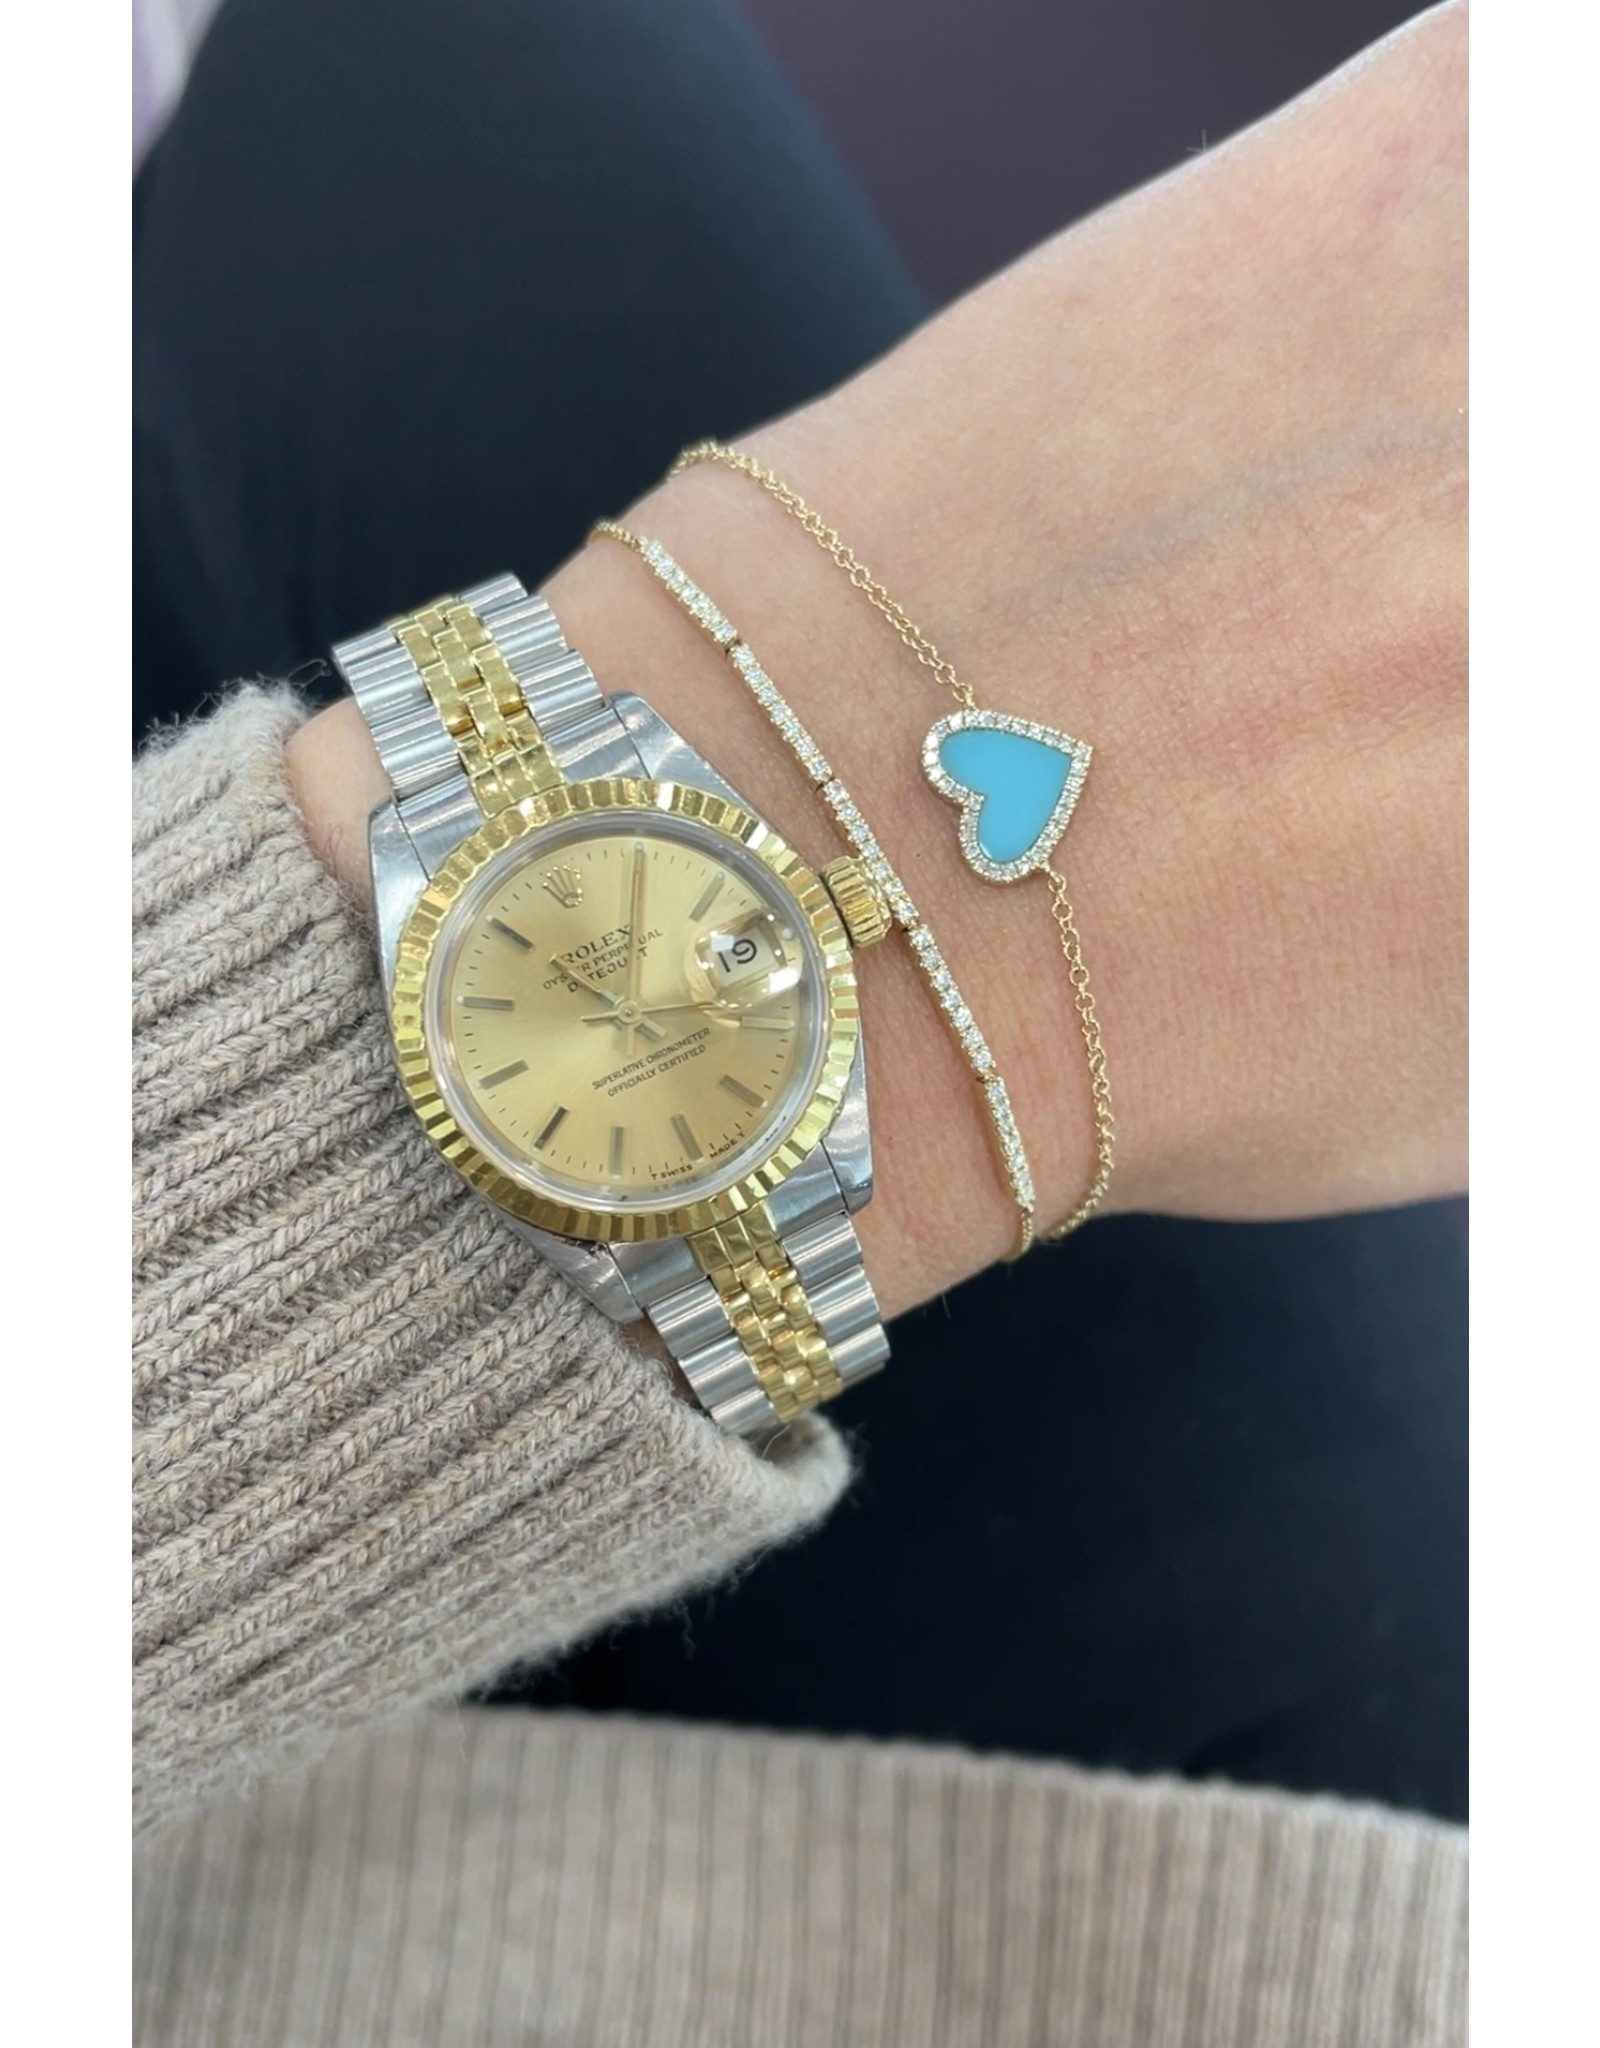 14K Yellow Gold Turquoise and Diamond Heart Bracelet, TQ: 0.60ct, D: 0.09ct